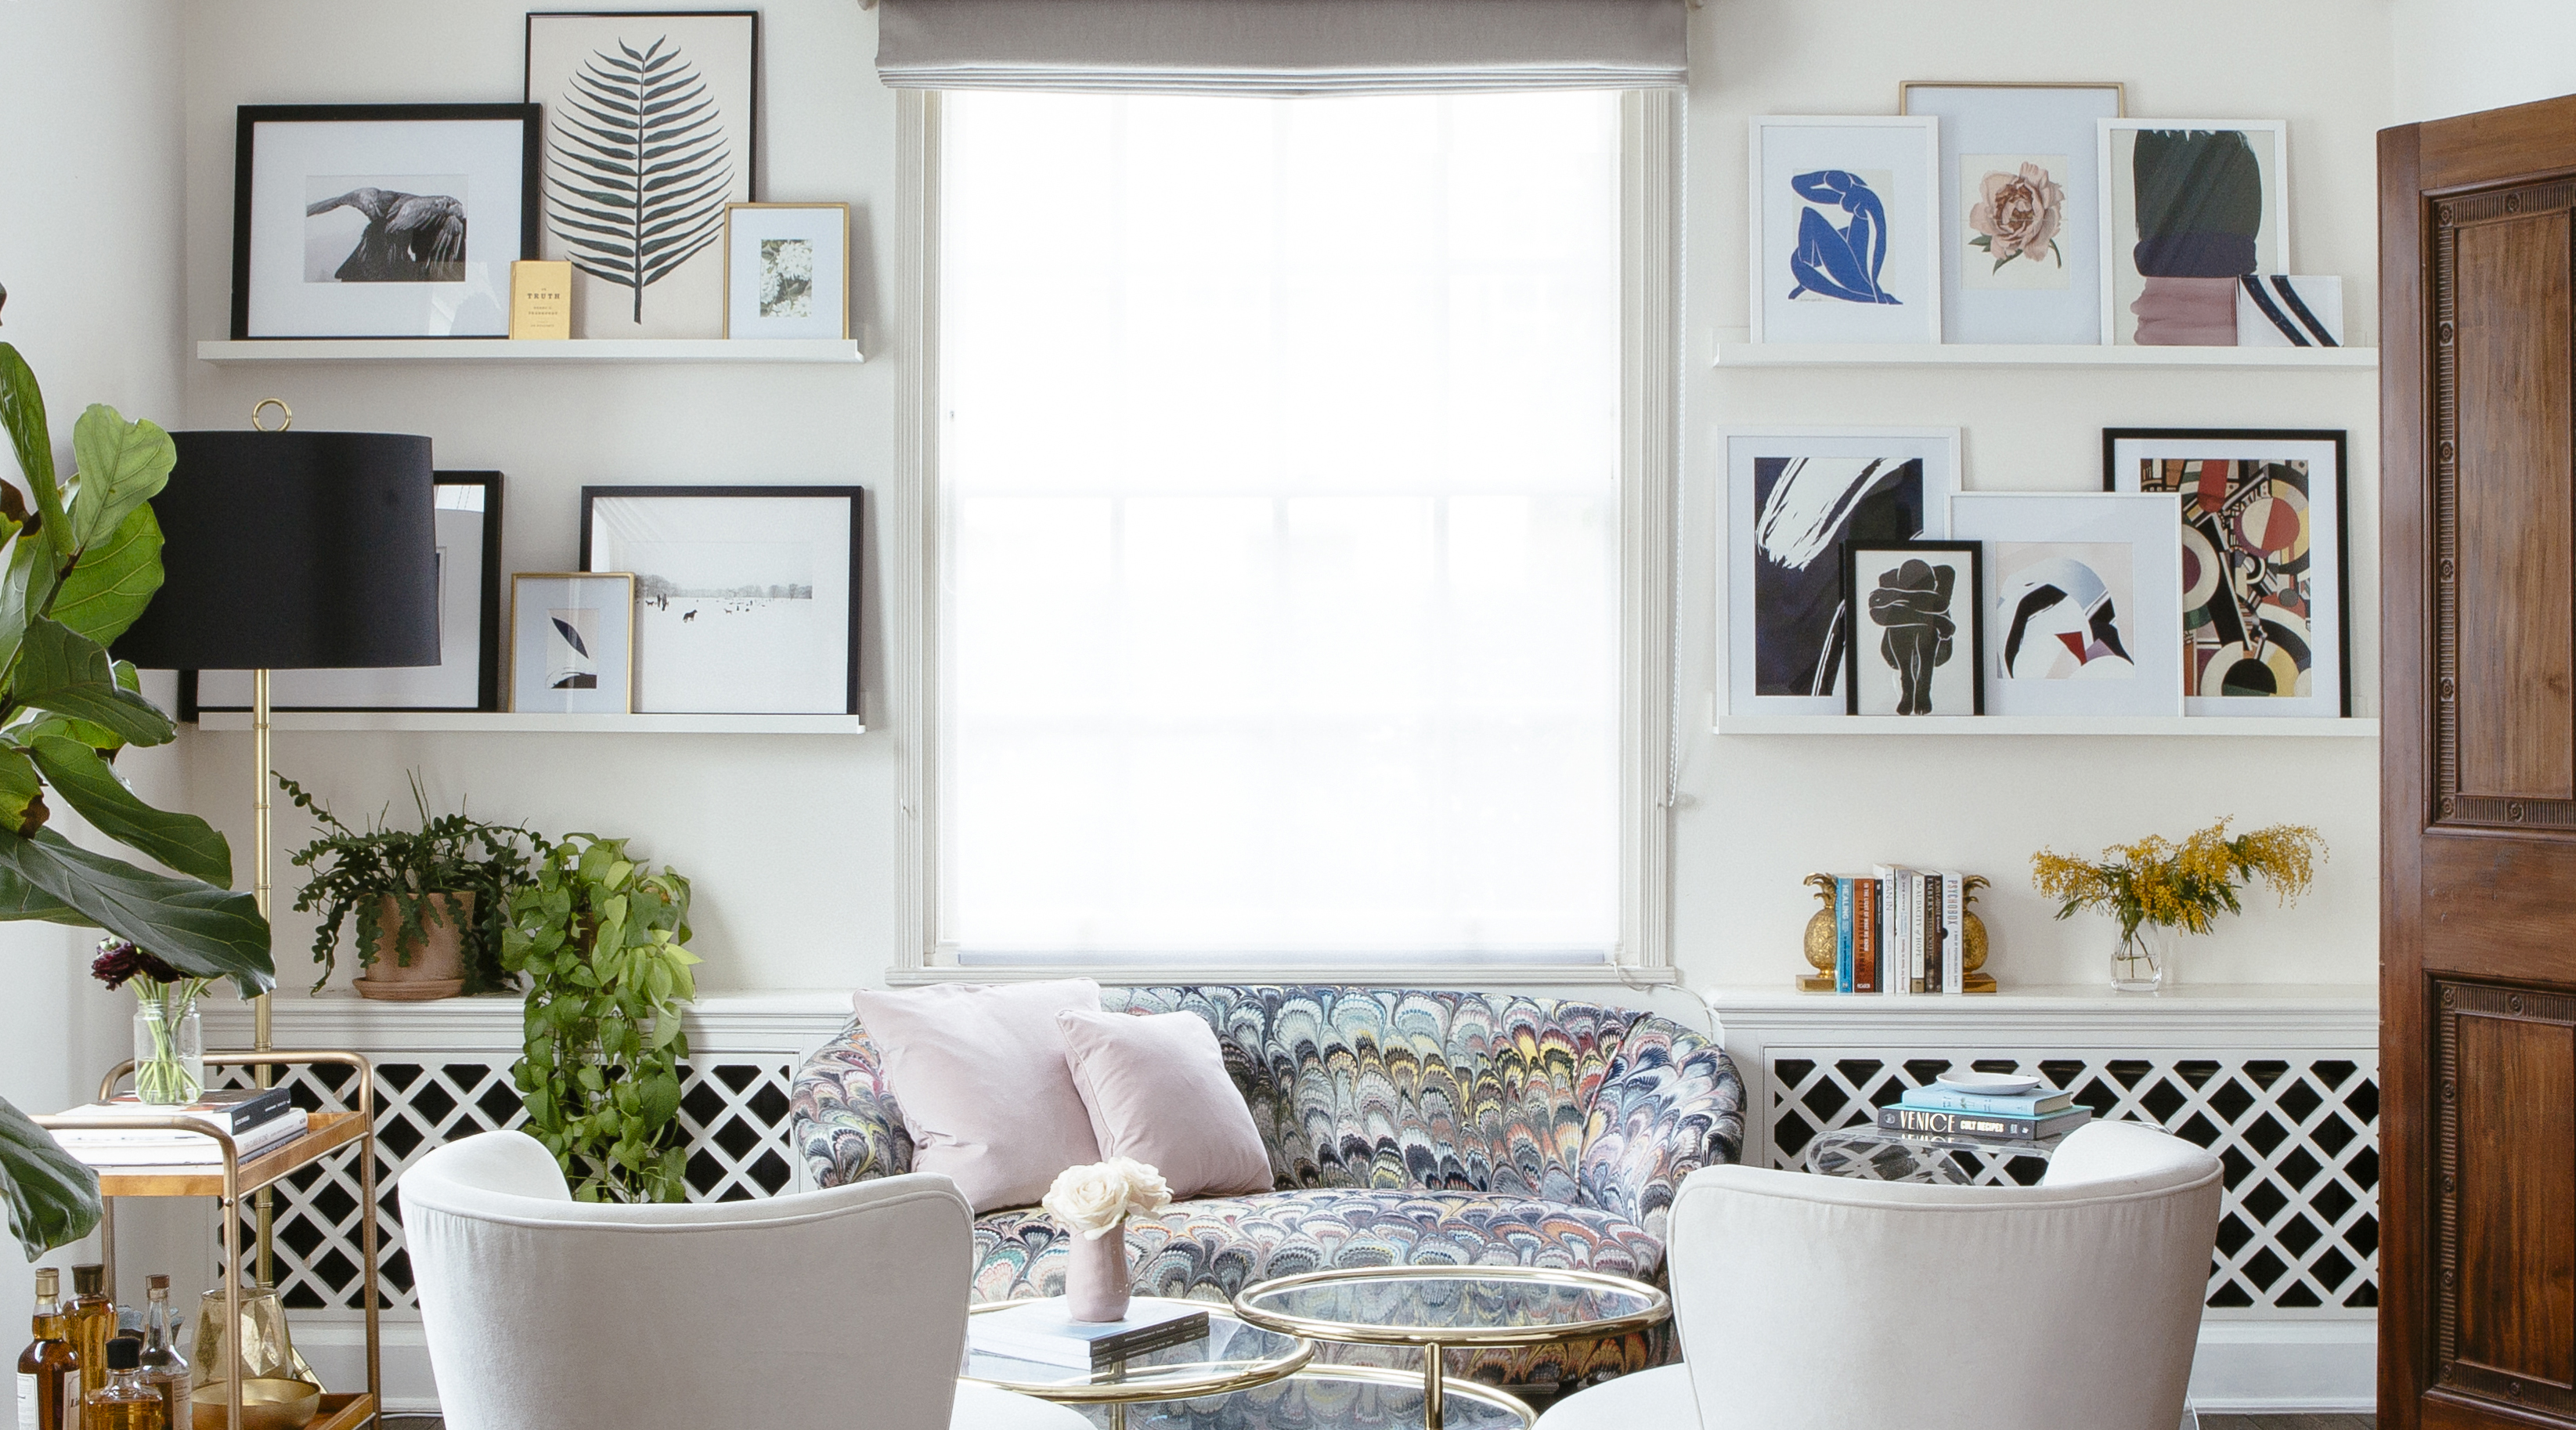 Living Room : Before & After | Flat 15 Design & Lifestyle